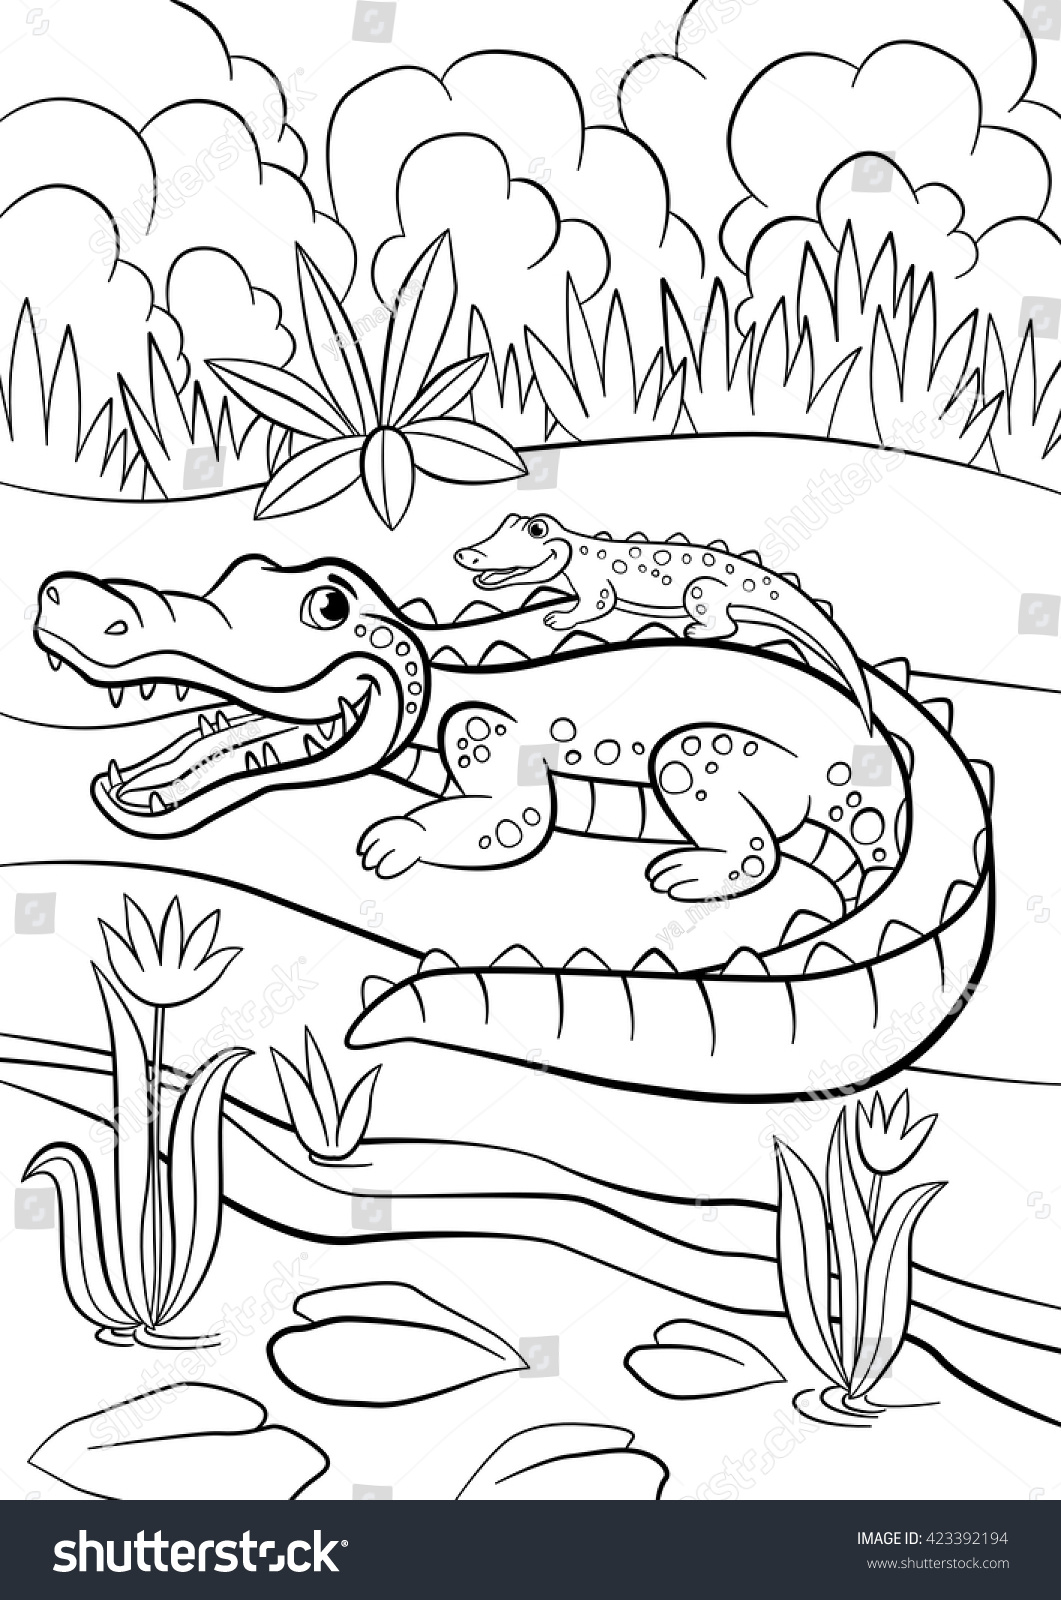 coloring pages animals mother alligator with her little cute baby alligator sitting in her